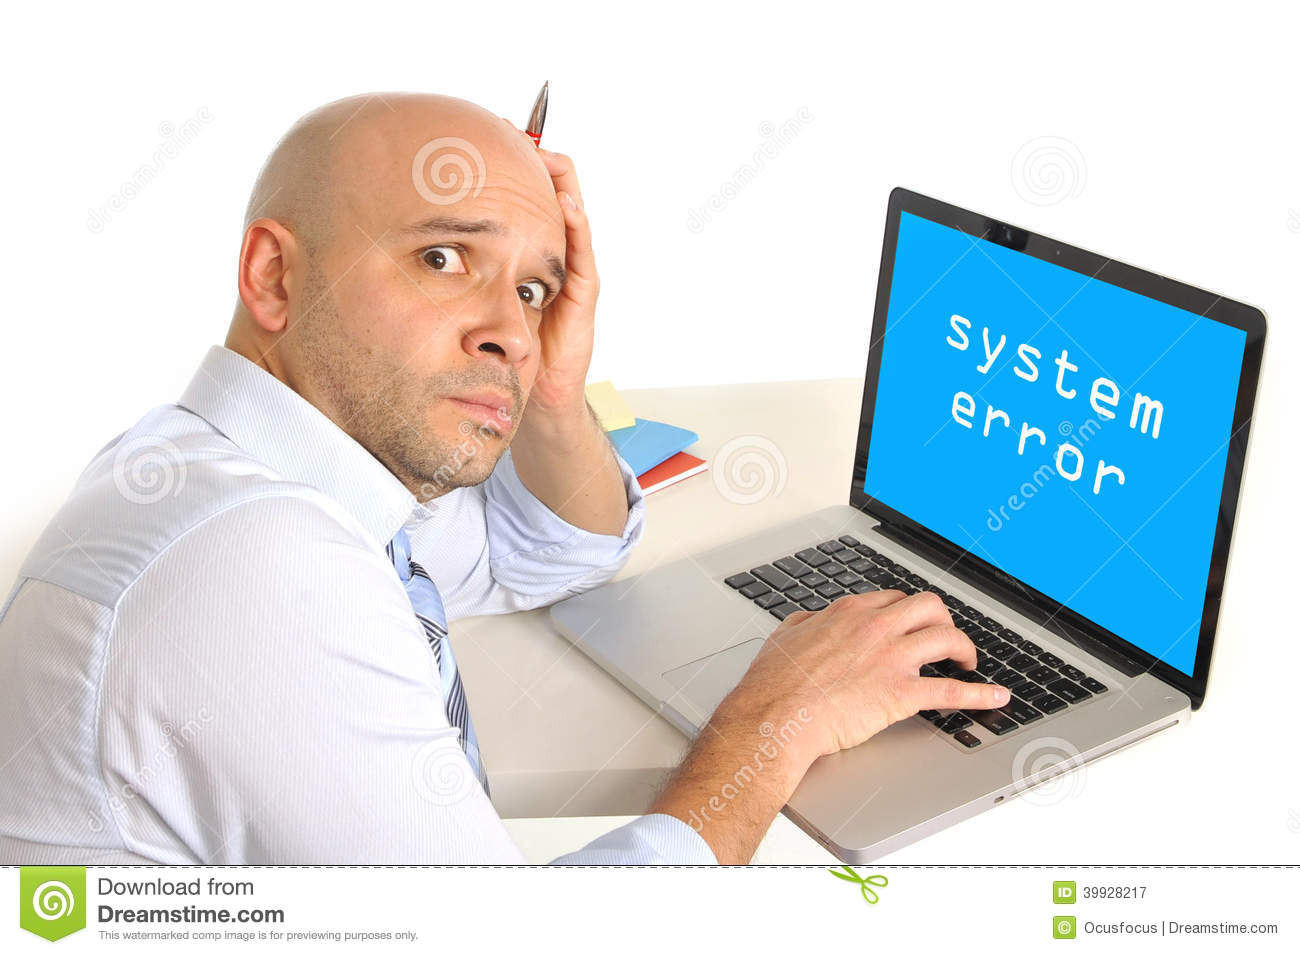 worried-young-business-man-technical-problem-computer-problems-39928217.jpg